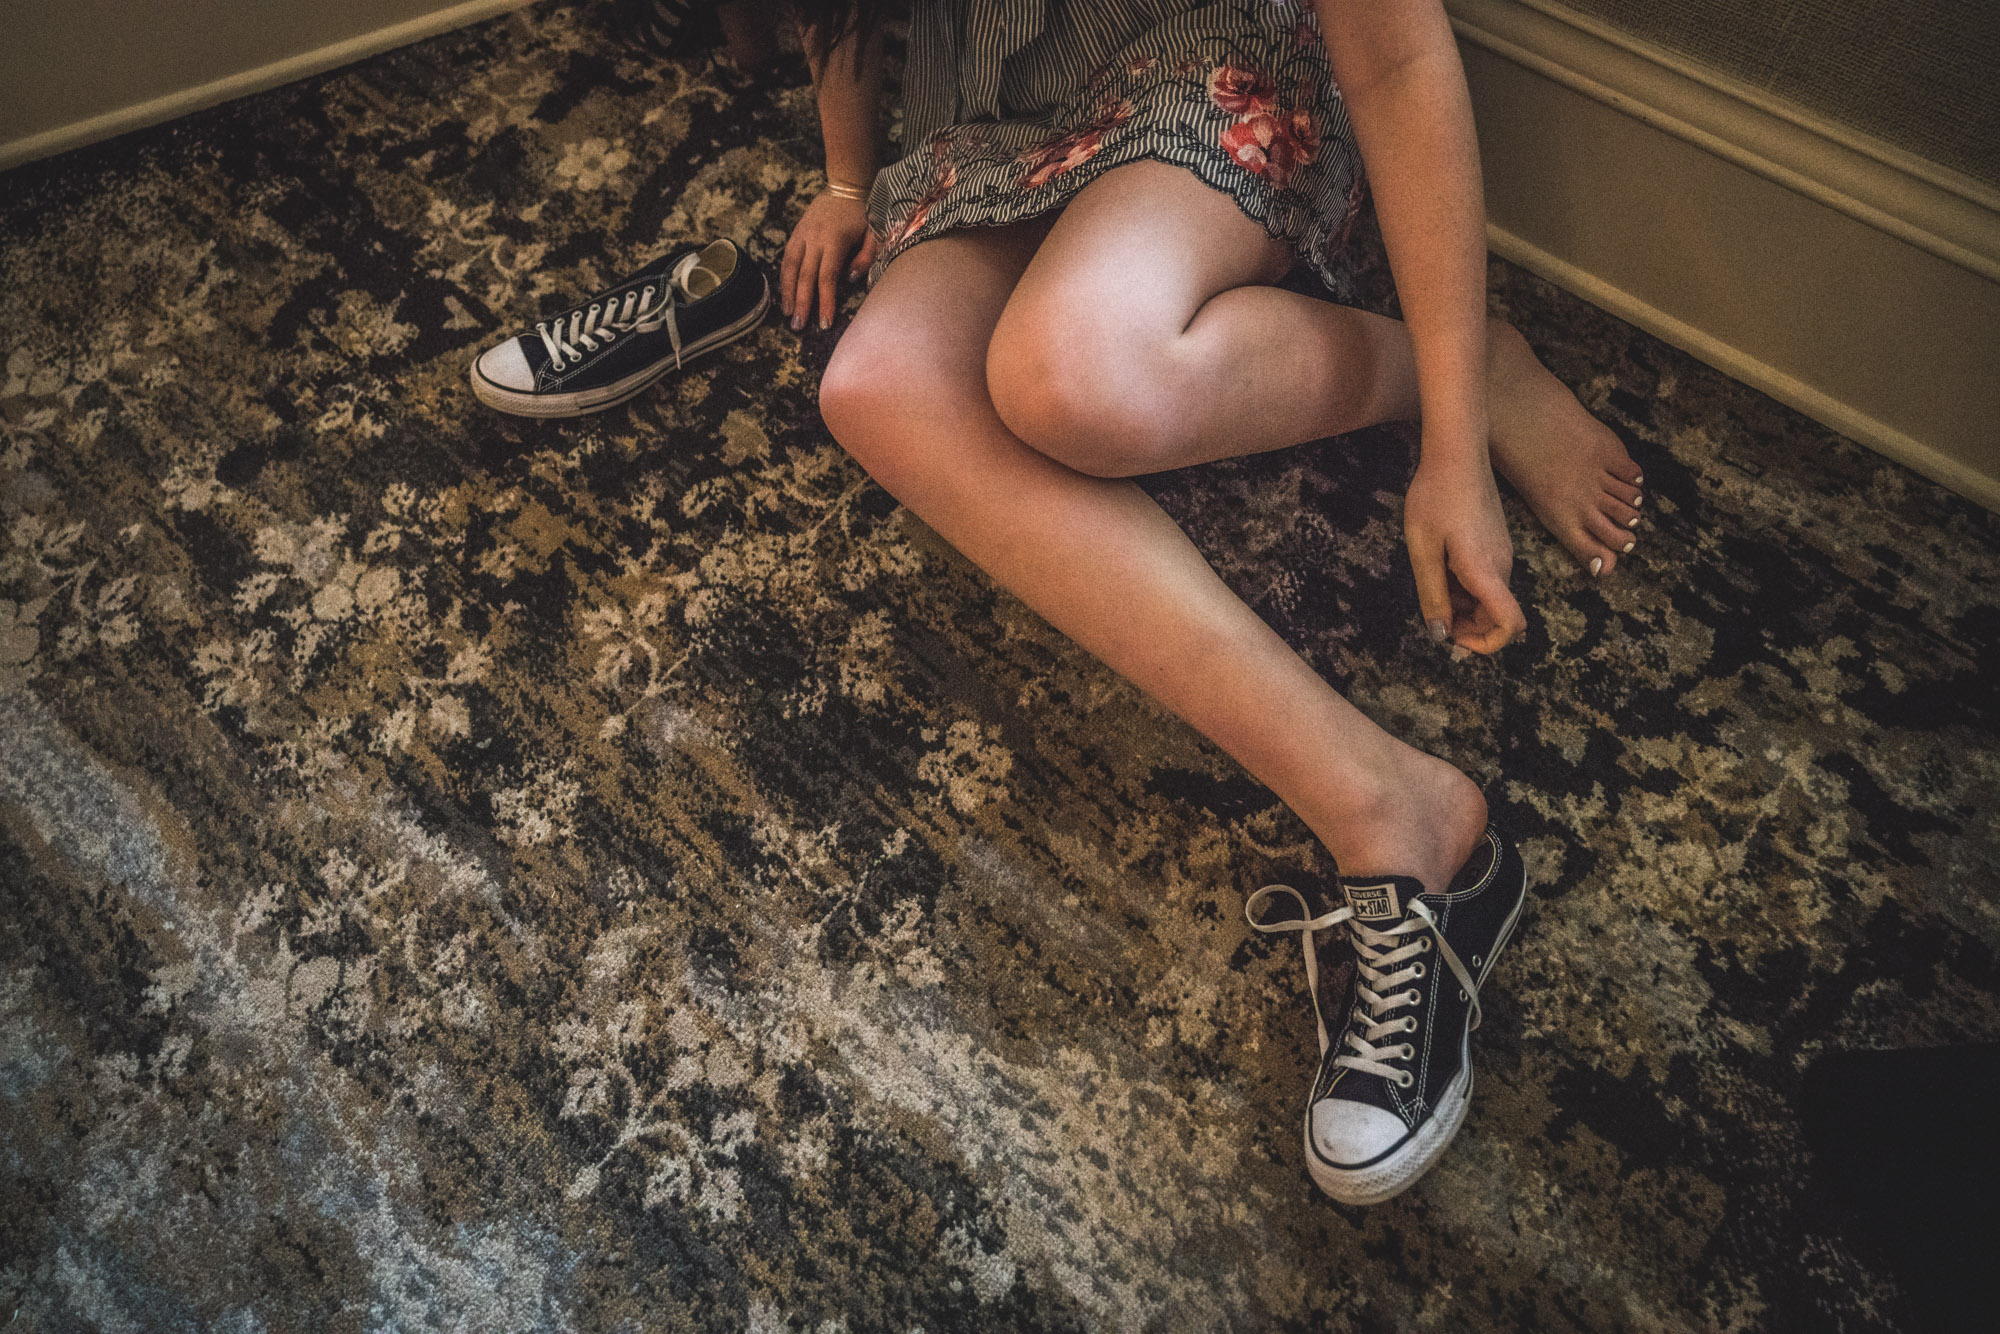 Color photo of a girl sitting on the ground in a dress and putting on black and white sneakers.